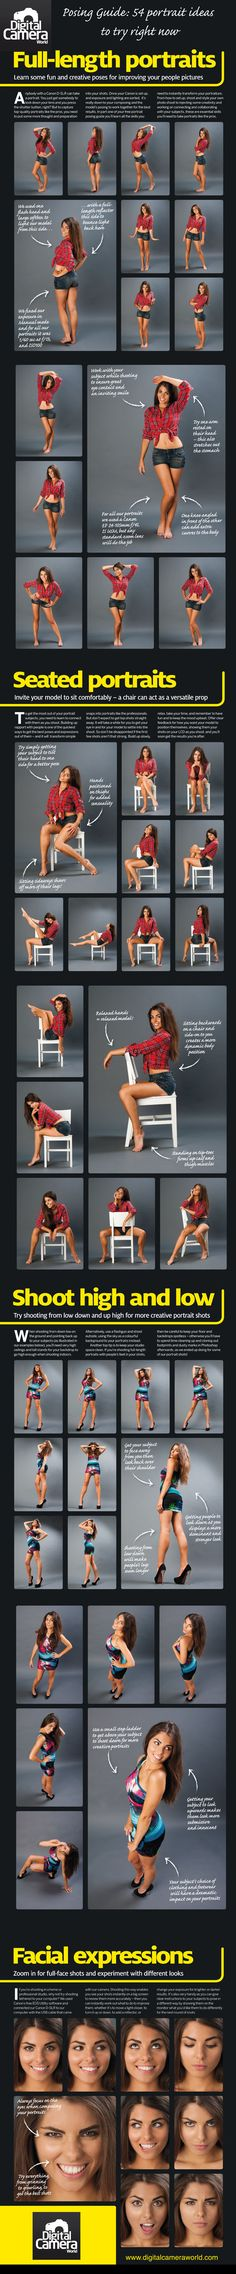 Most people don't know how to pose when it comes to portrait pictures and you see many amateur and unprofessional models because they don't look confident in their pictures. This infographic DigitalCameraWorld goes through 50 different poses which will li Photography Cheat Sheets, Art Photography, Photography Business, Photography Guide, Fashion Photography, Photography Camera, Photography Backdrops, Digital Photography, Photography Ideas For Teens